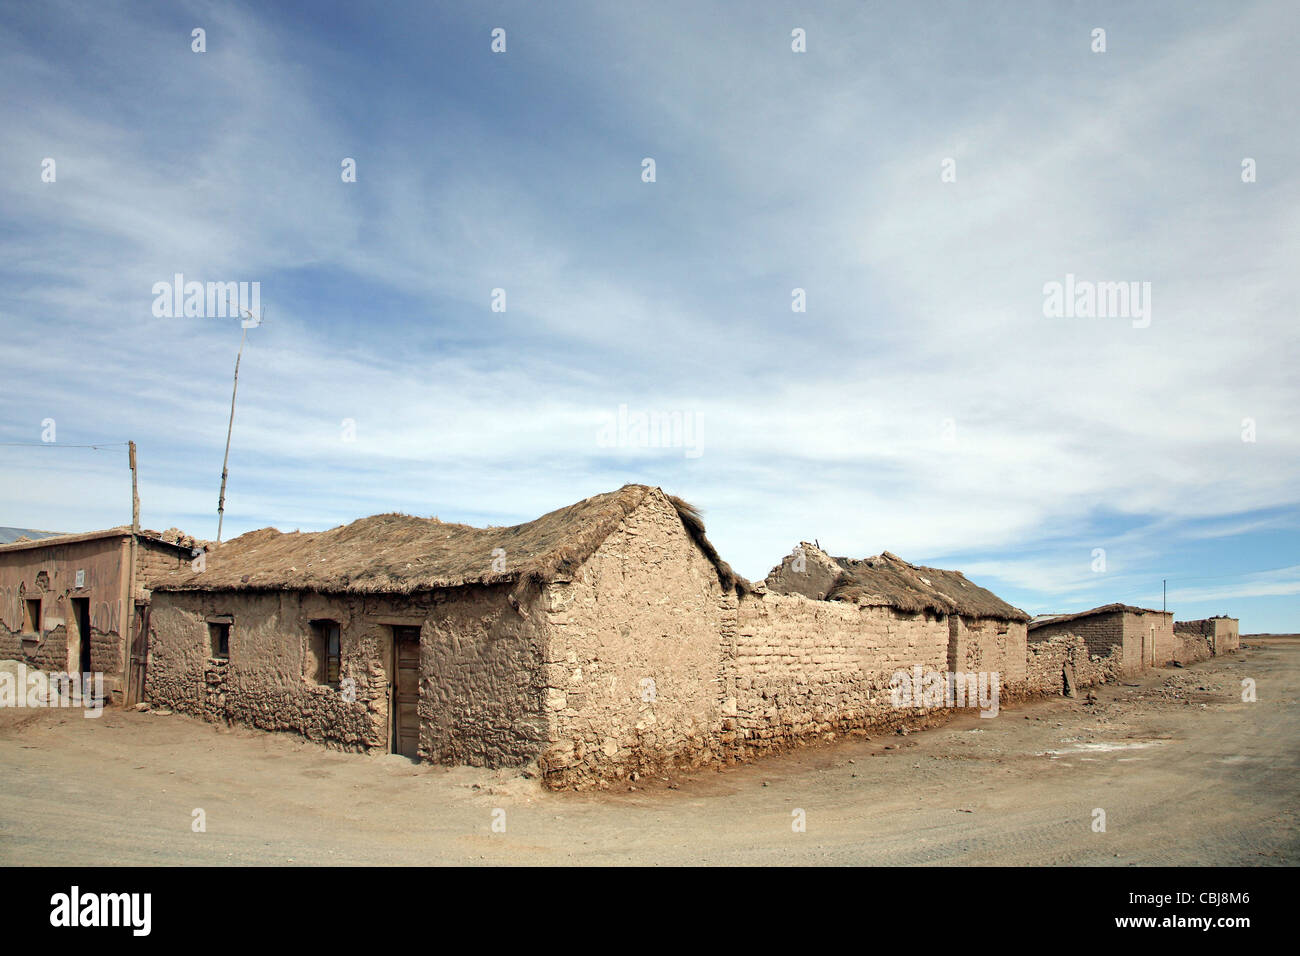 Street corner and adobe houses with thatched roofs in the village Colchani on the high plateau Altiplano, Bolivia - Stock Image